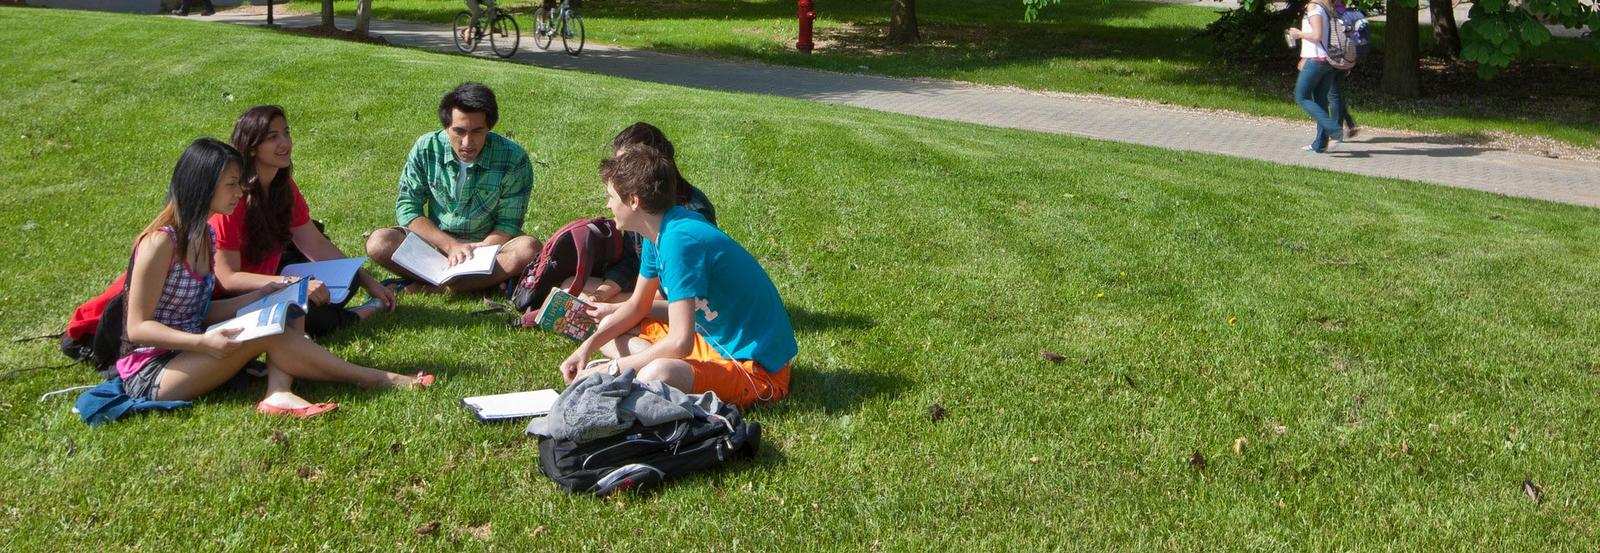 Students sitting on grass discussing